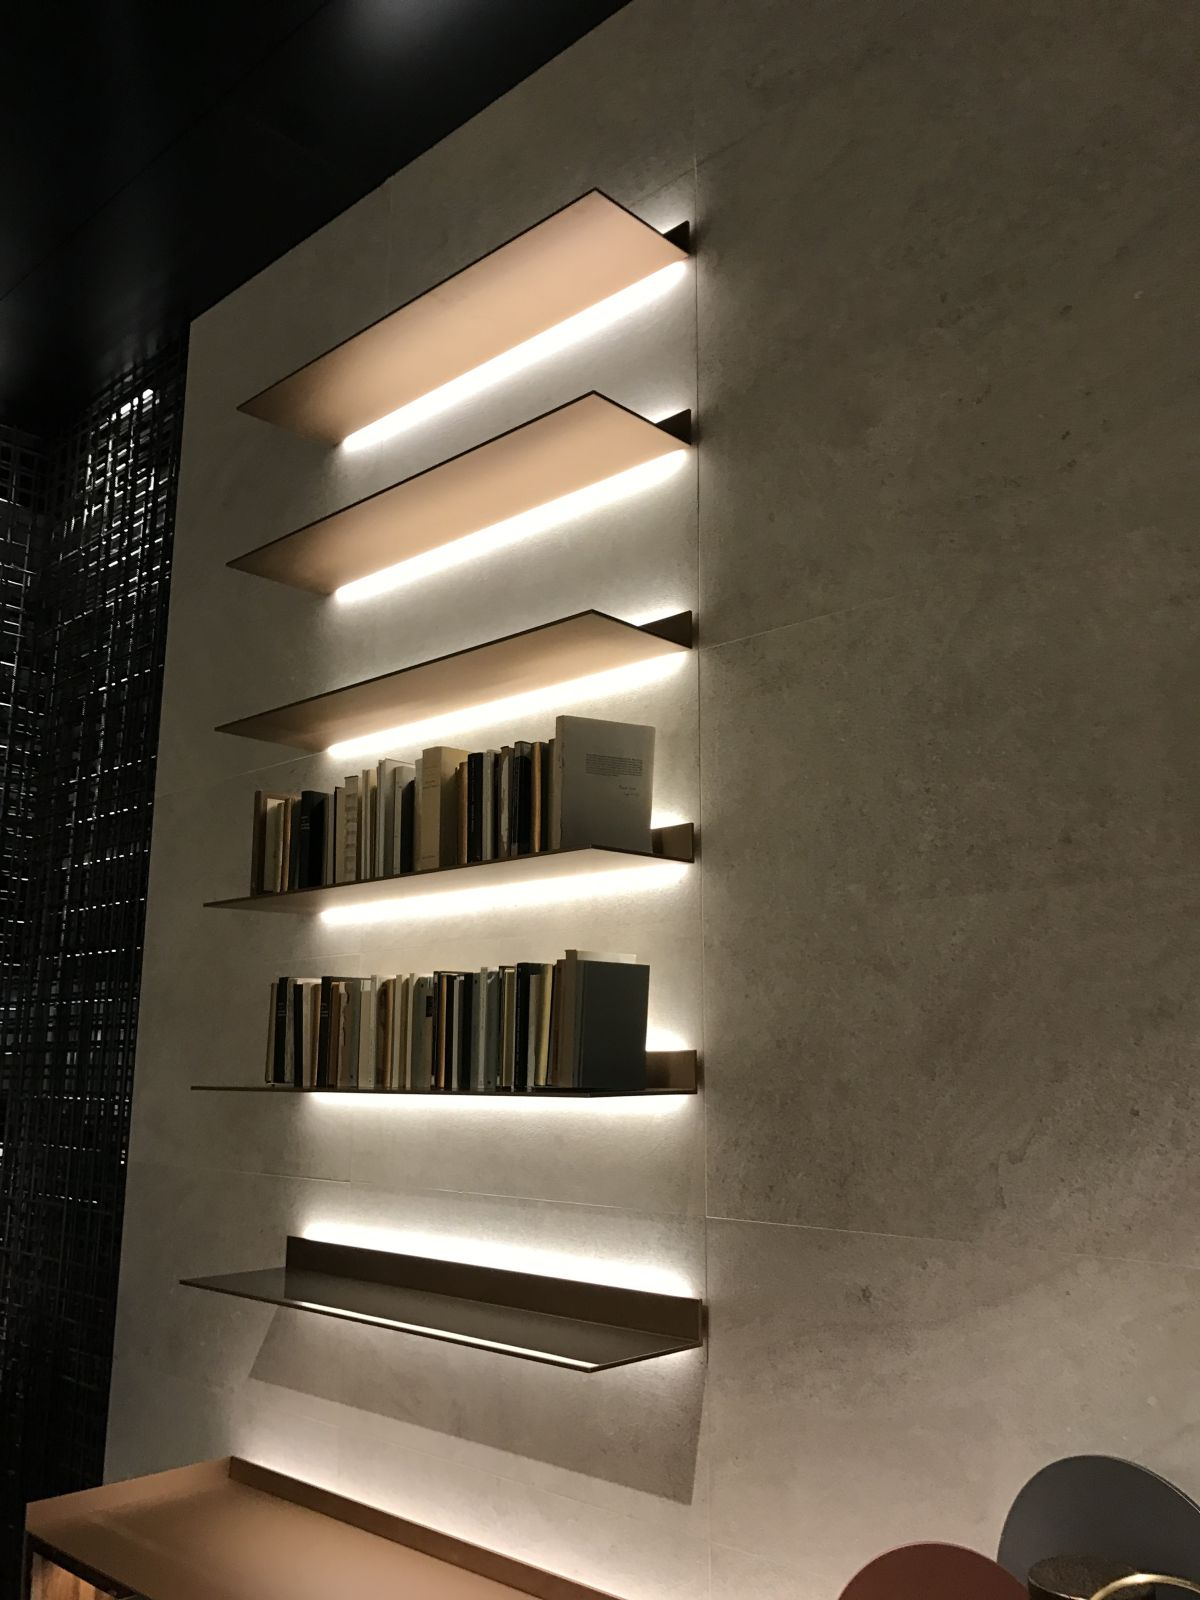 Frame Mounted Led Picture Lights